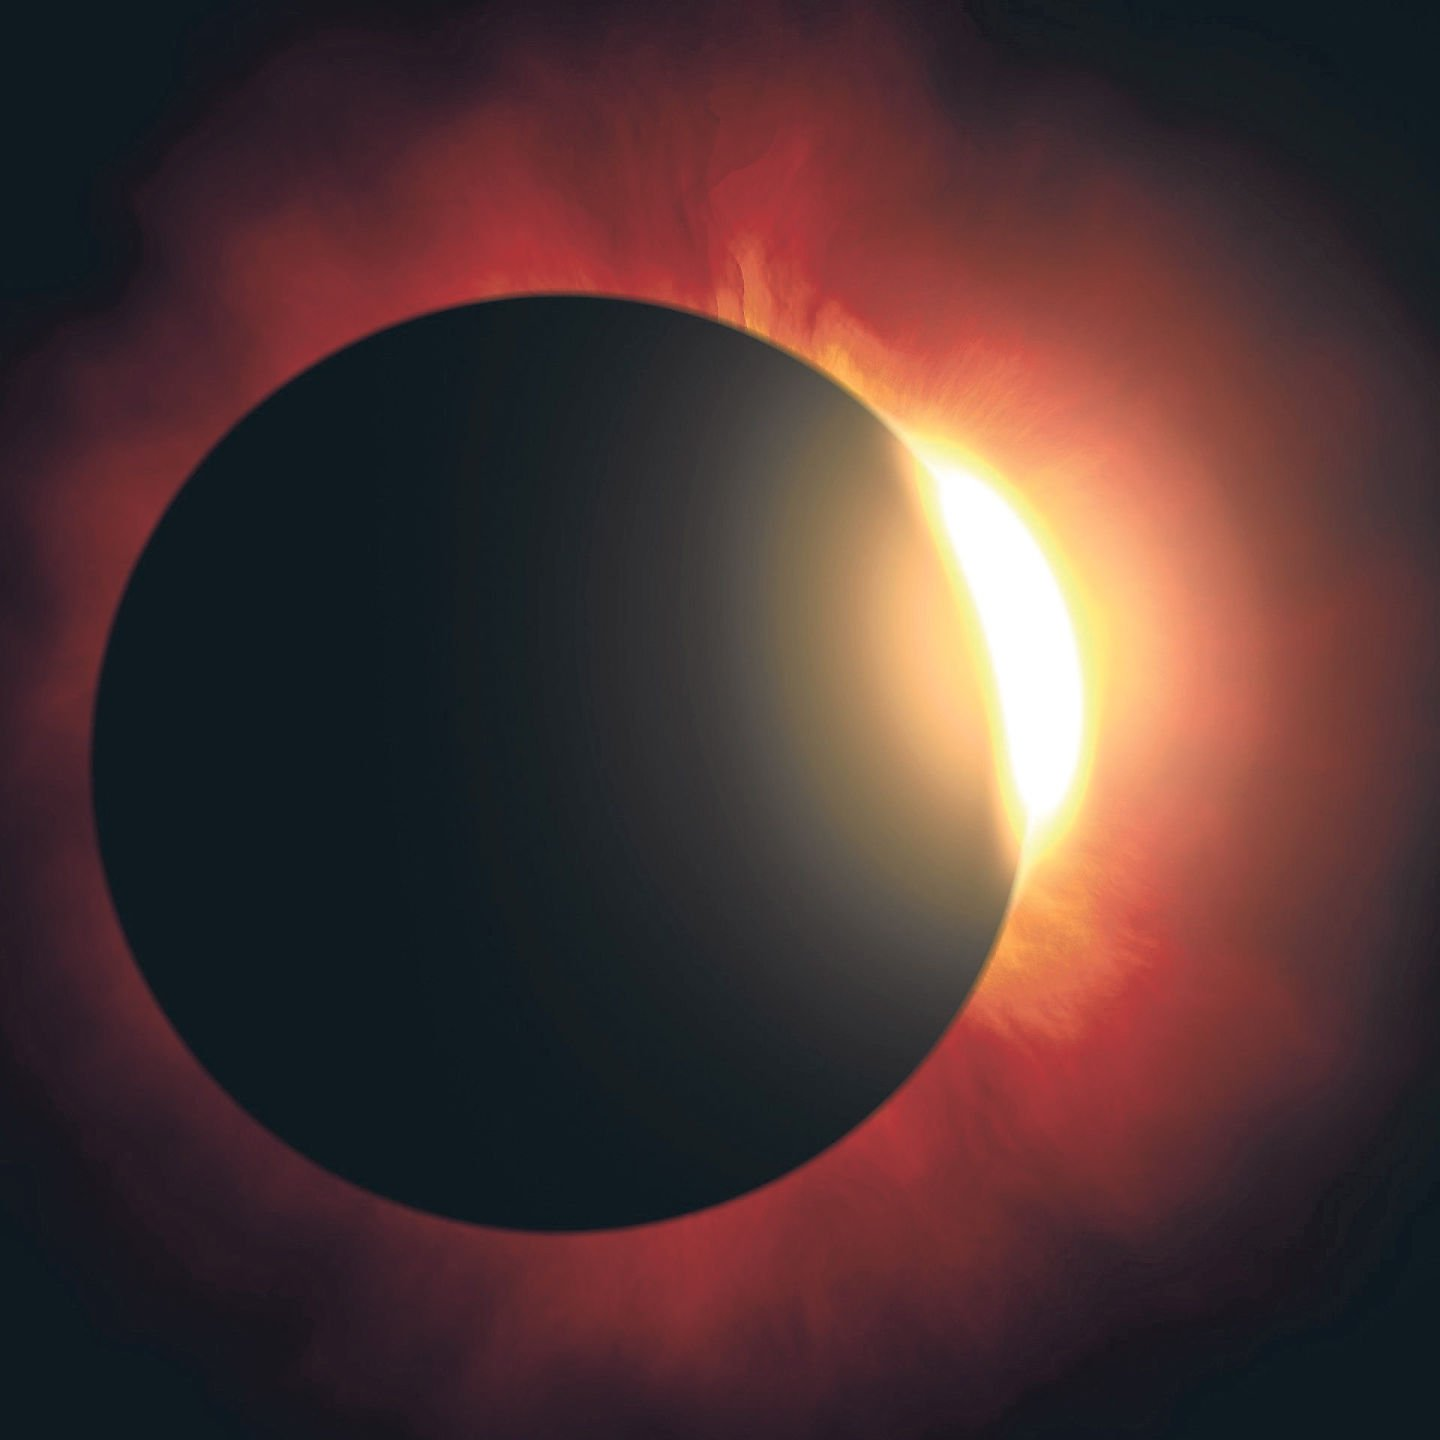 Taking photos of the solar eclipse could damage your smartphone